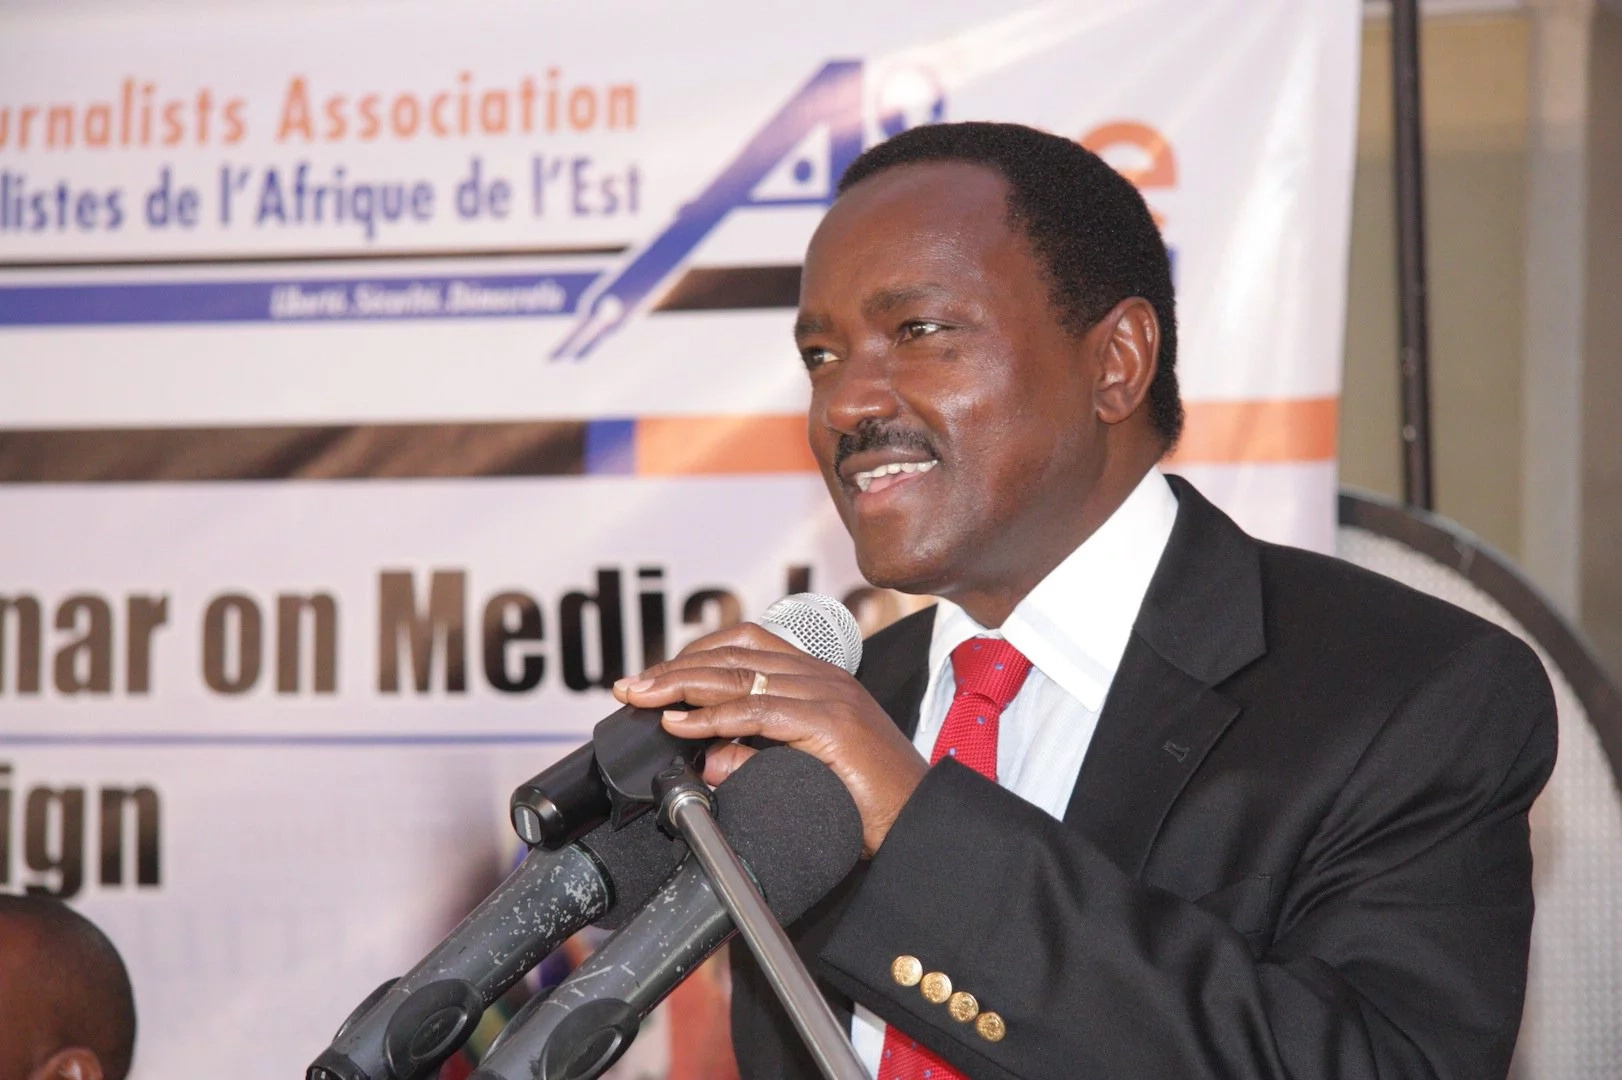 Kalonzo breaks his silence after reports that he is being investigated over an illegal bank account